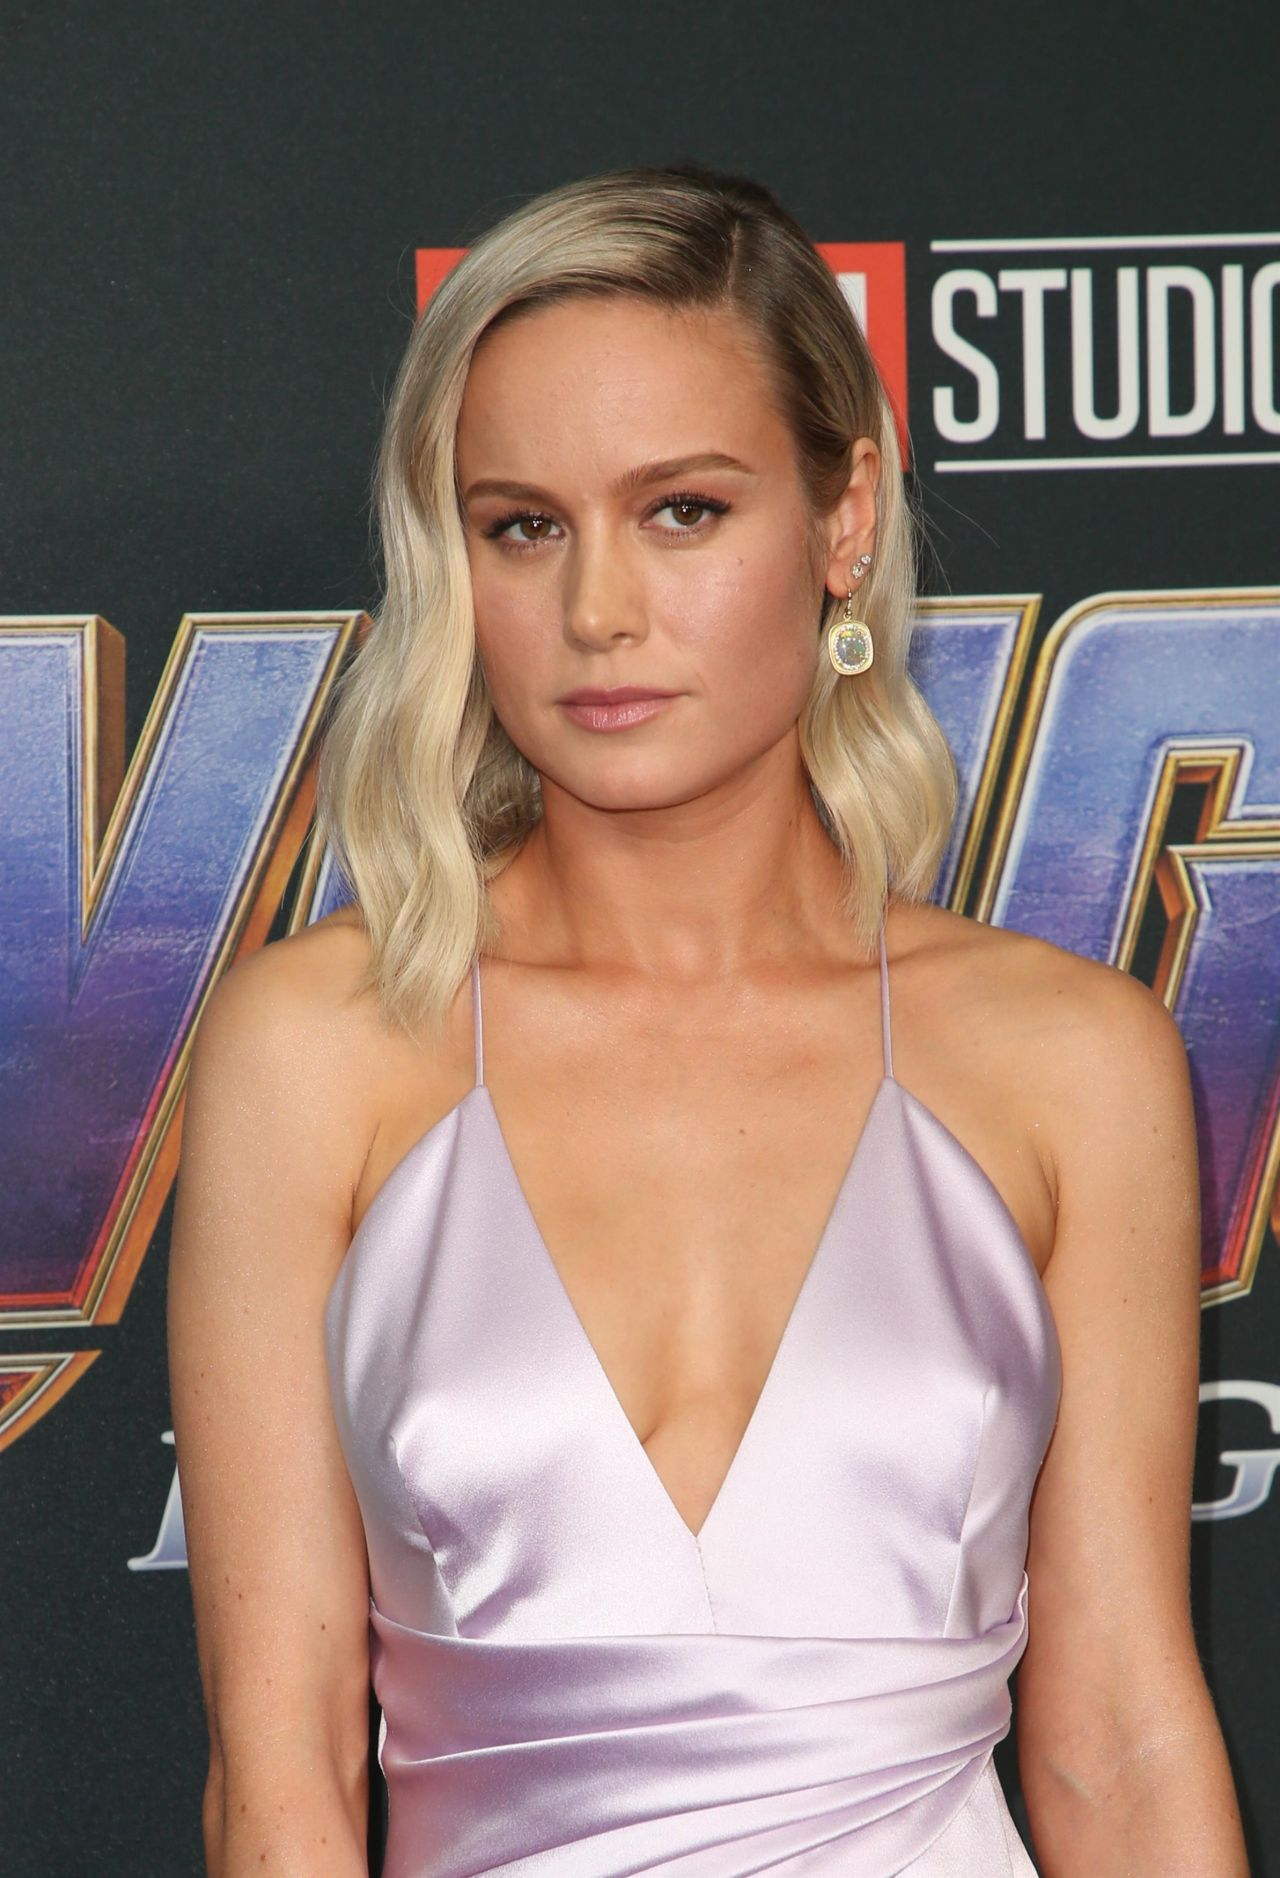 brie larson attends the world premiere of avengers